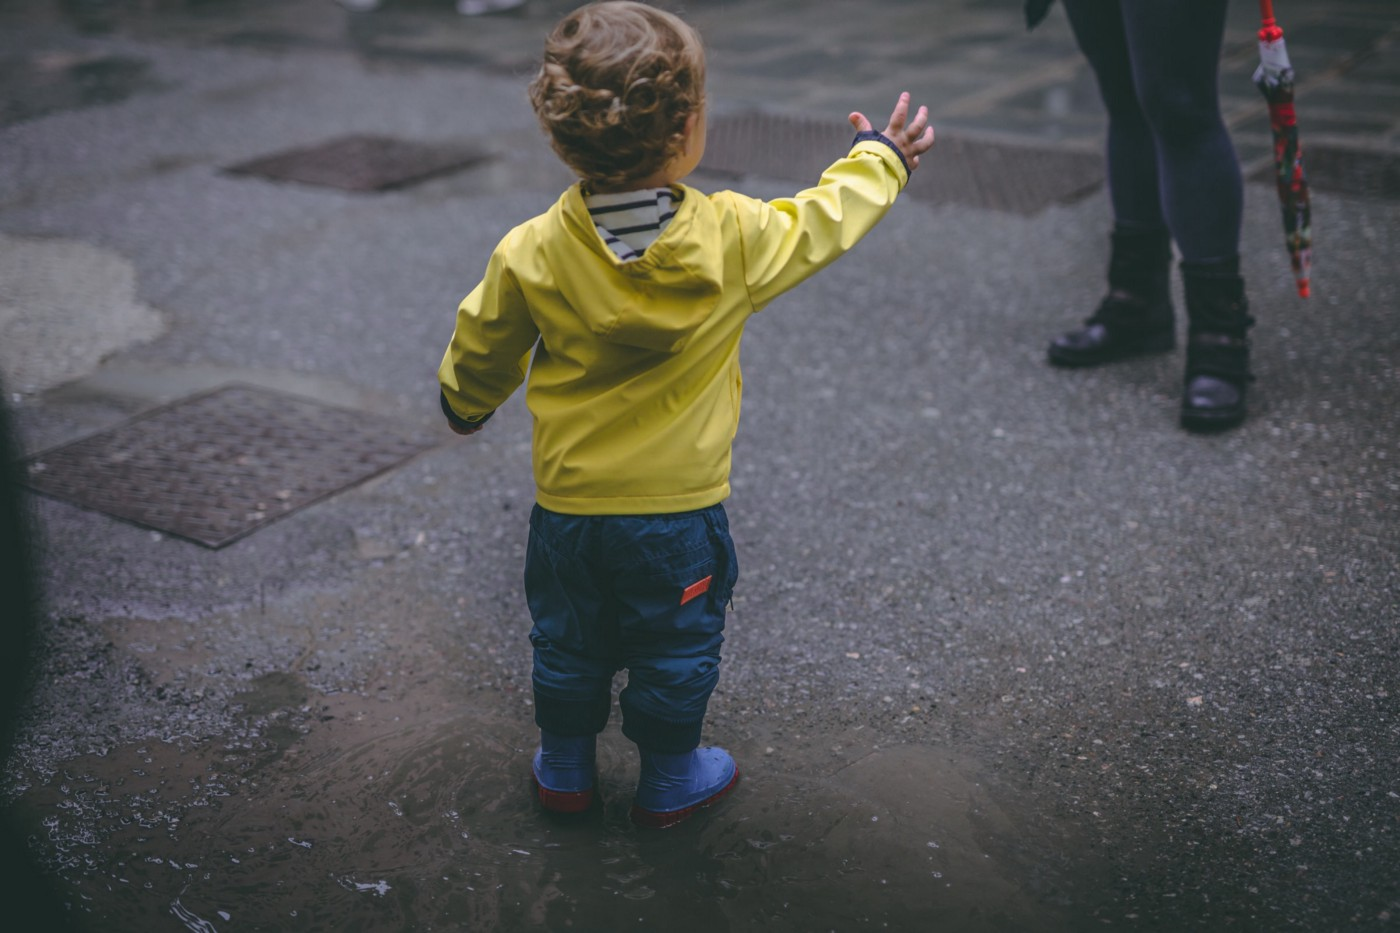 Toddler in yellow rain jacket reaches out for his mother